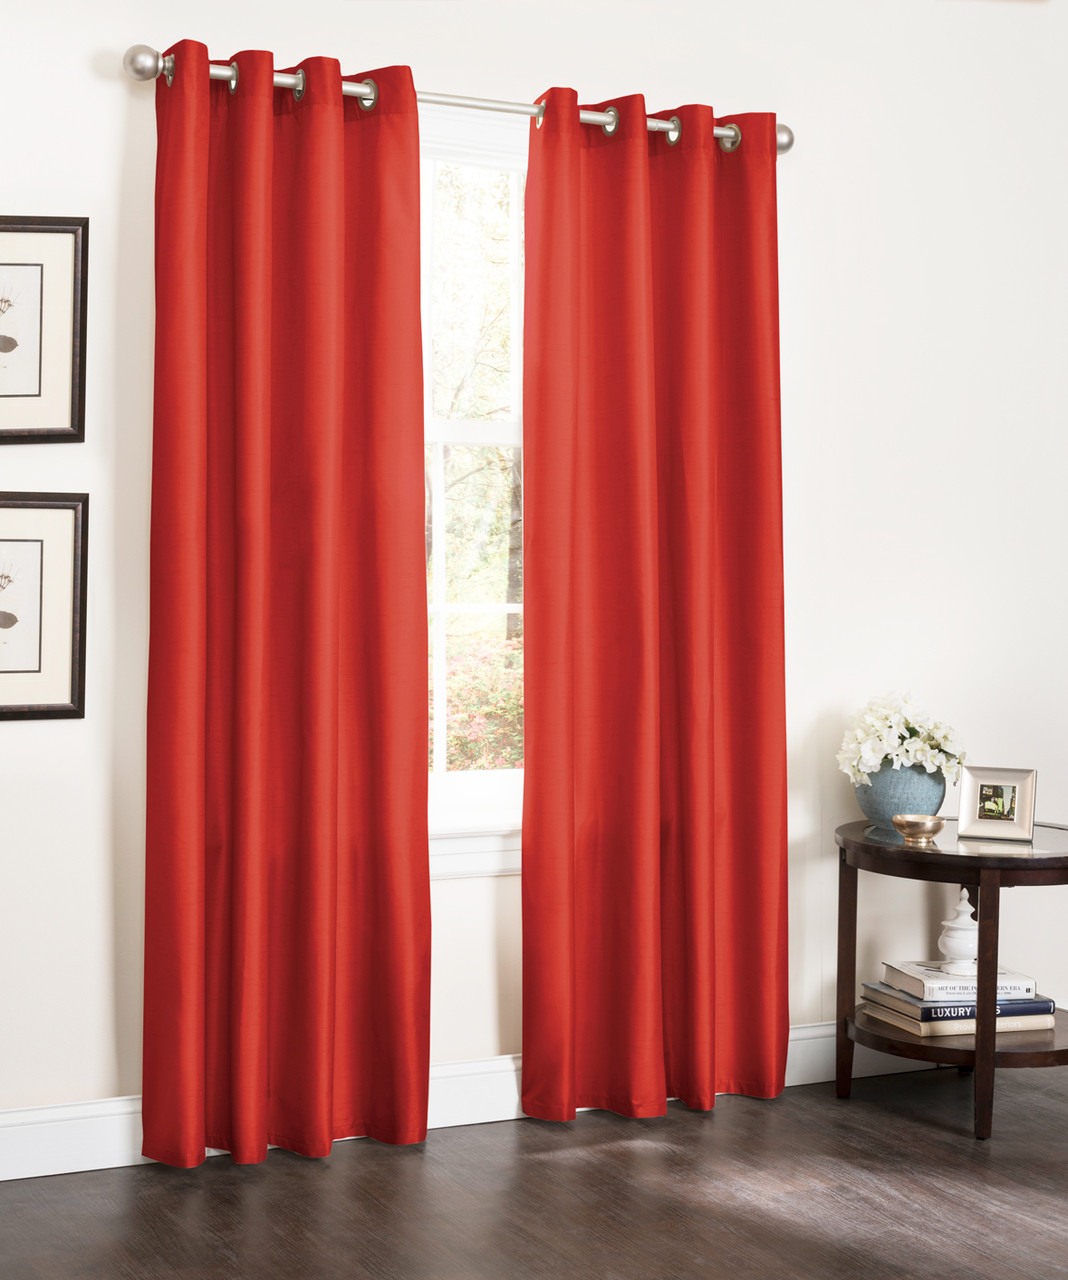 Kashi Home Erin Energy Efficient Blackout Curtains 2 Pack 54X84